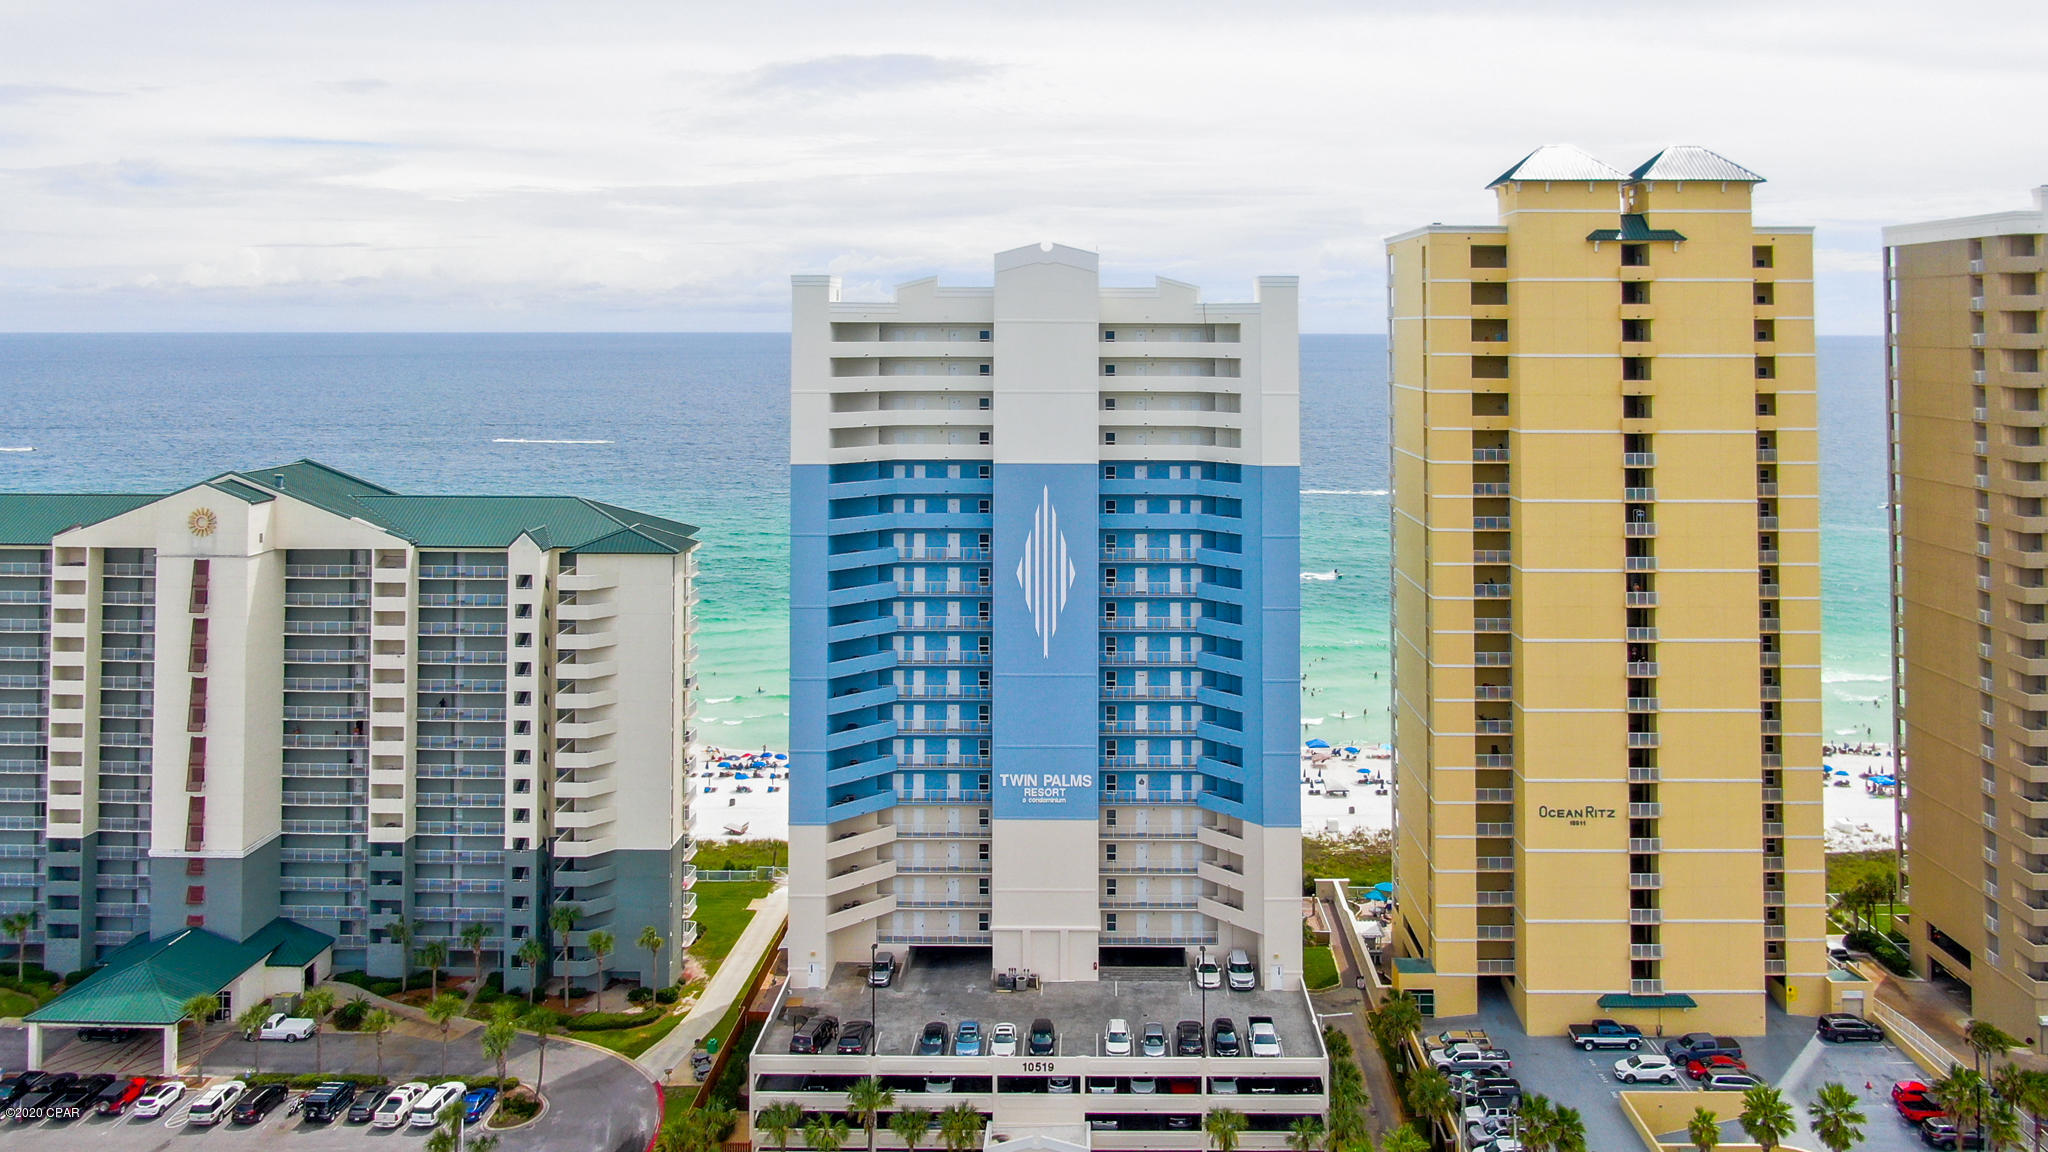 PENTHOUSE! GULF FRONT! TOP FLOOR! DEDICATED PARKING! This is an amazing and rare opportunity for one